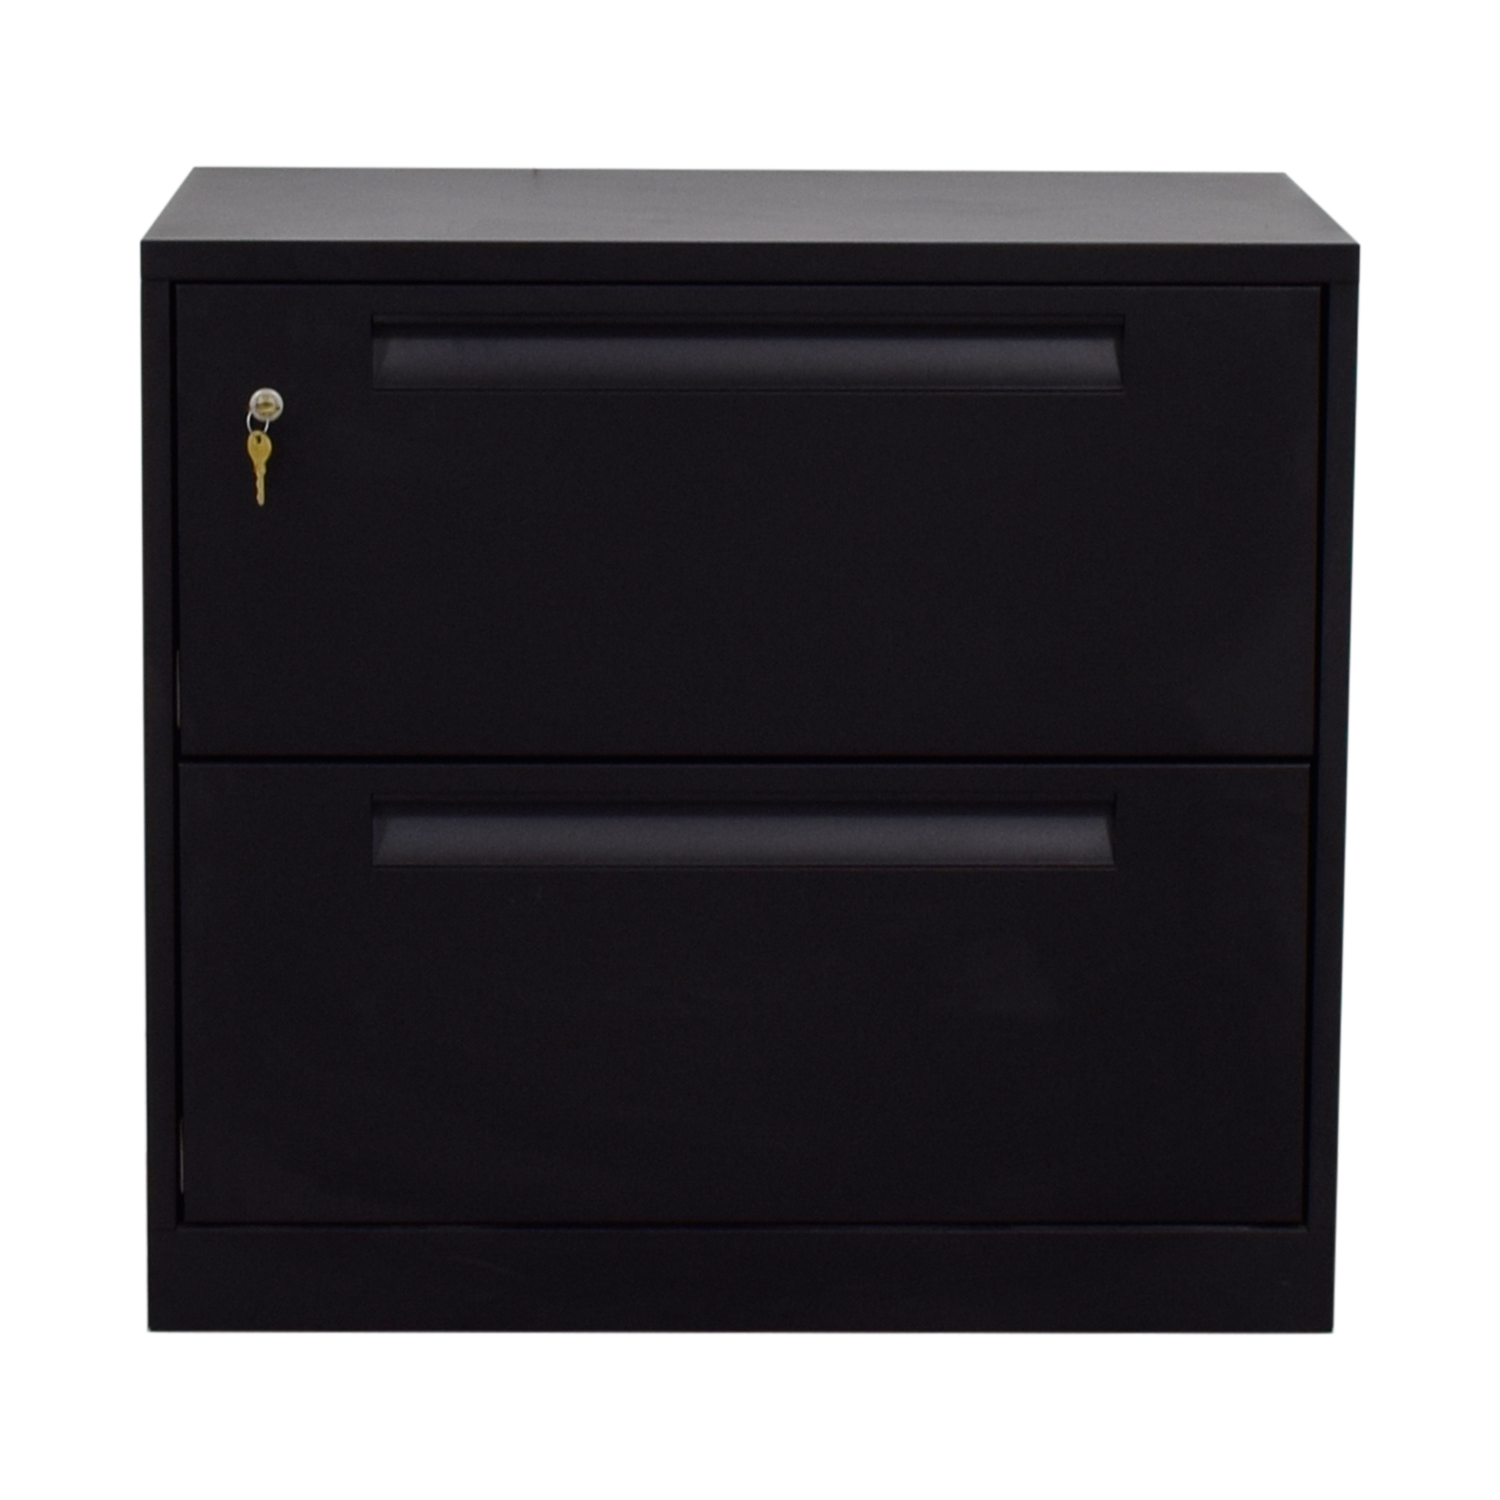 buy Steelcase Black Lateral Two-Drawer File Cabinet Steelcase Sofas